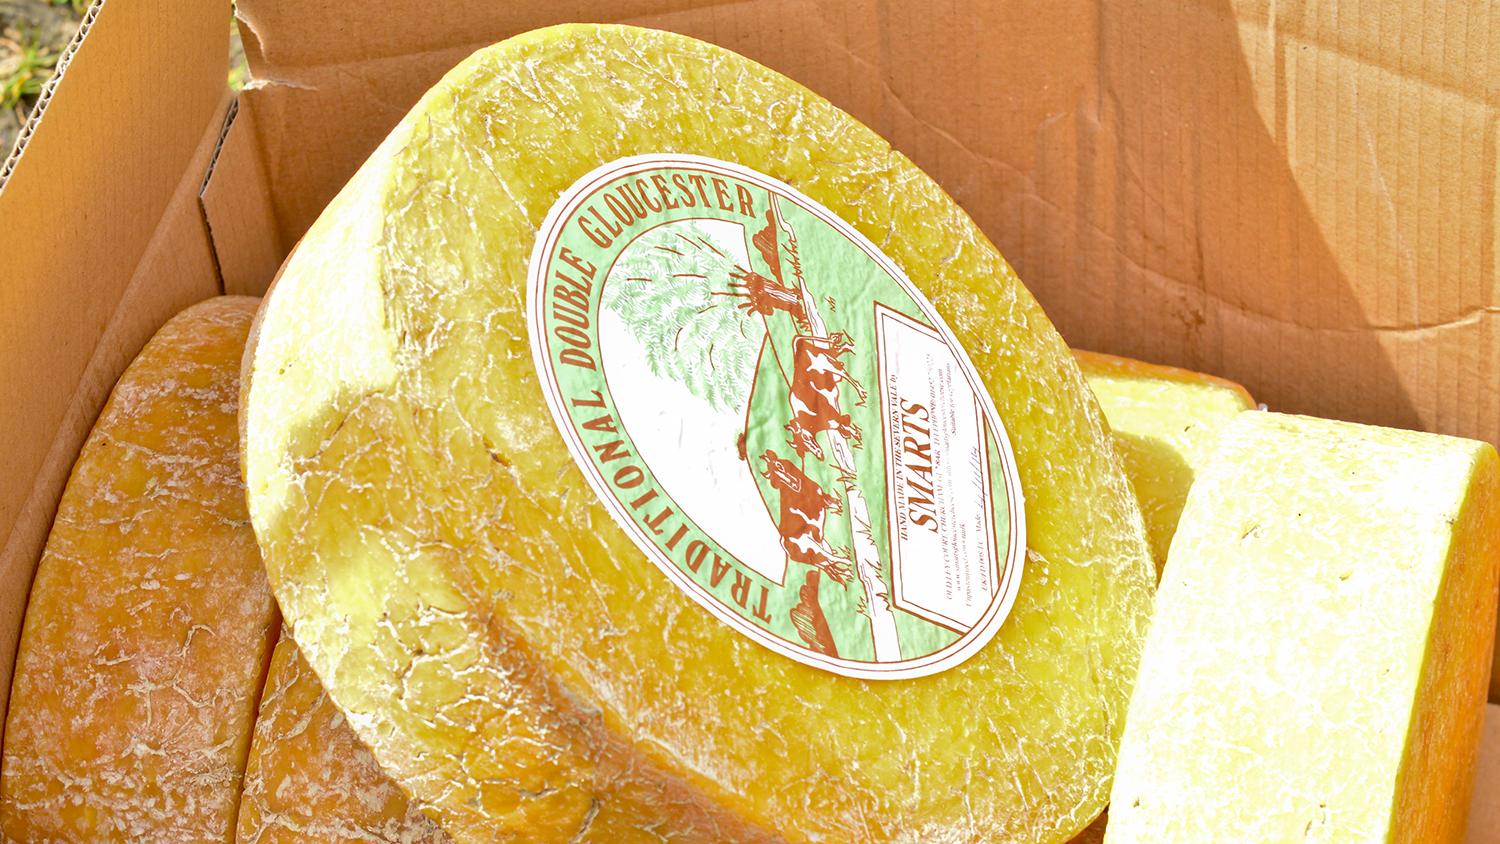 Watch This Englishman Tie a Record for Chasing Cheese Down a Hill